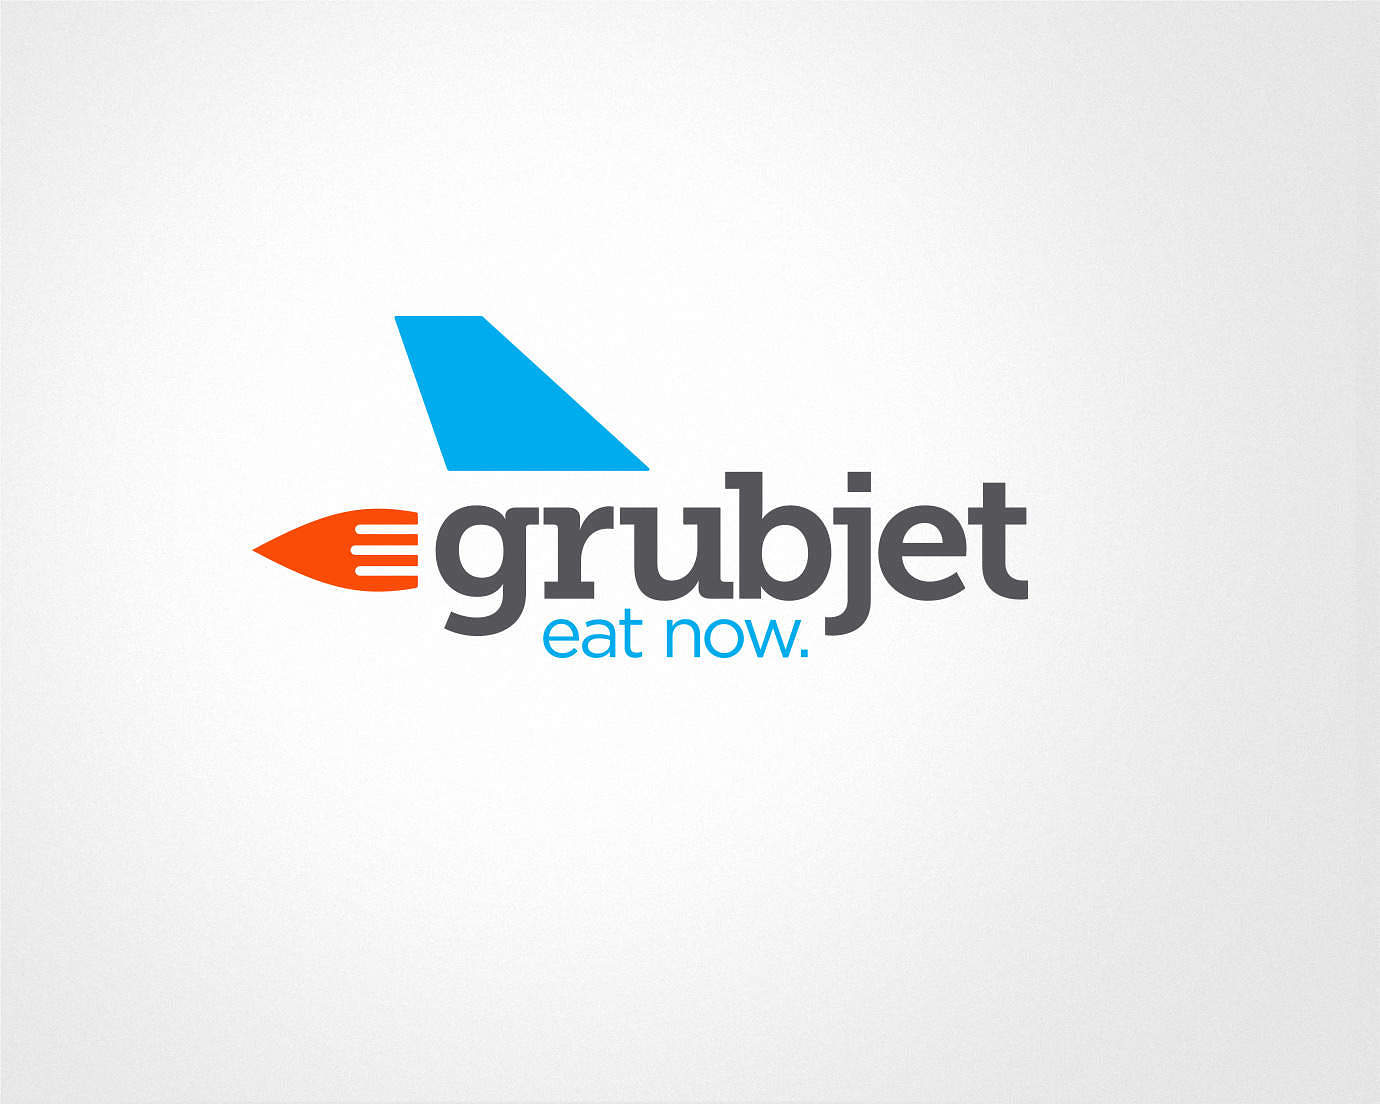 Grubjet Food Delivery Logo